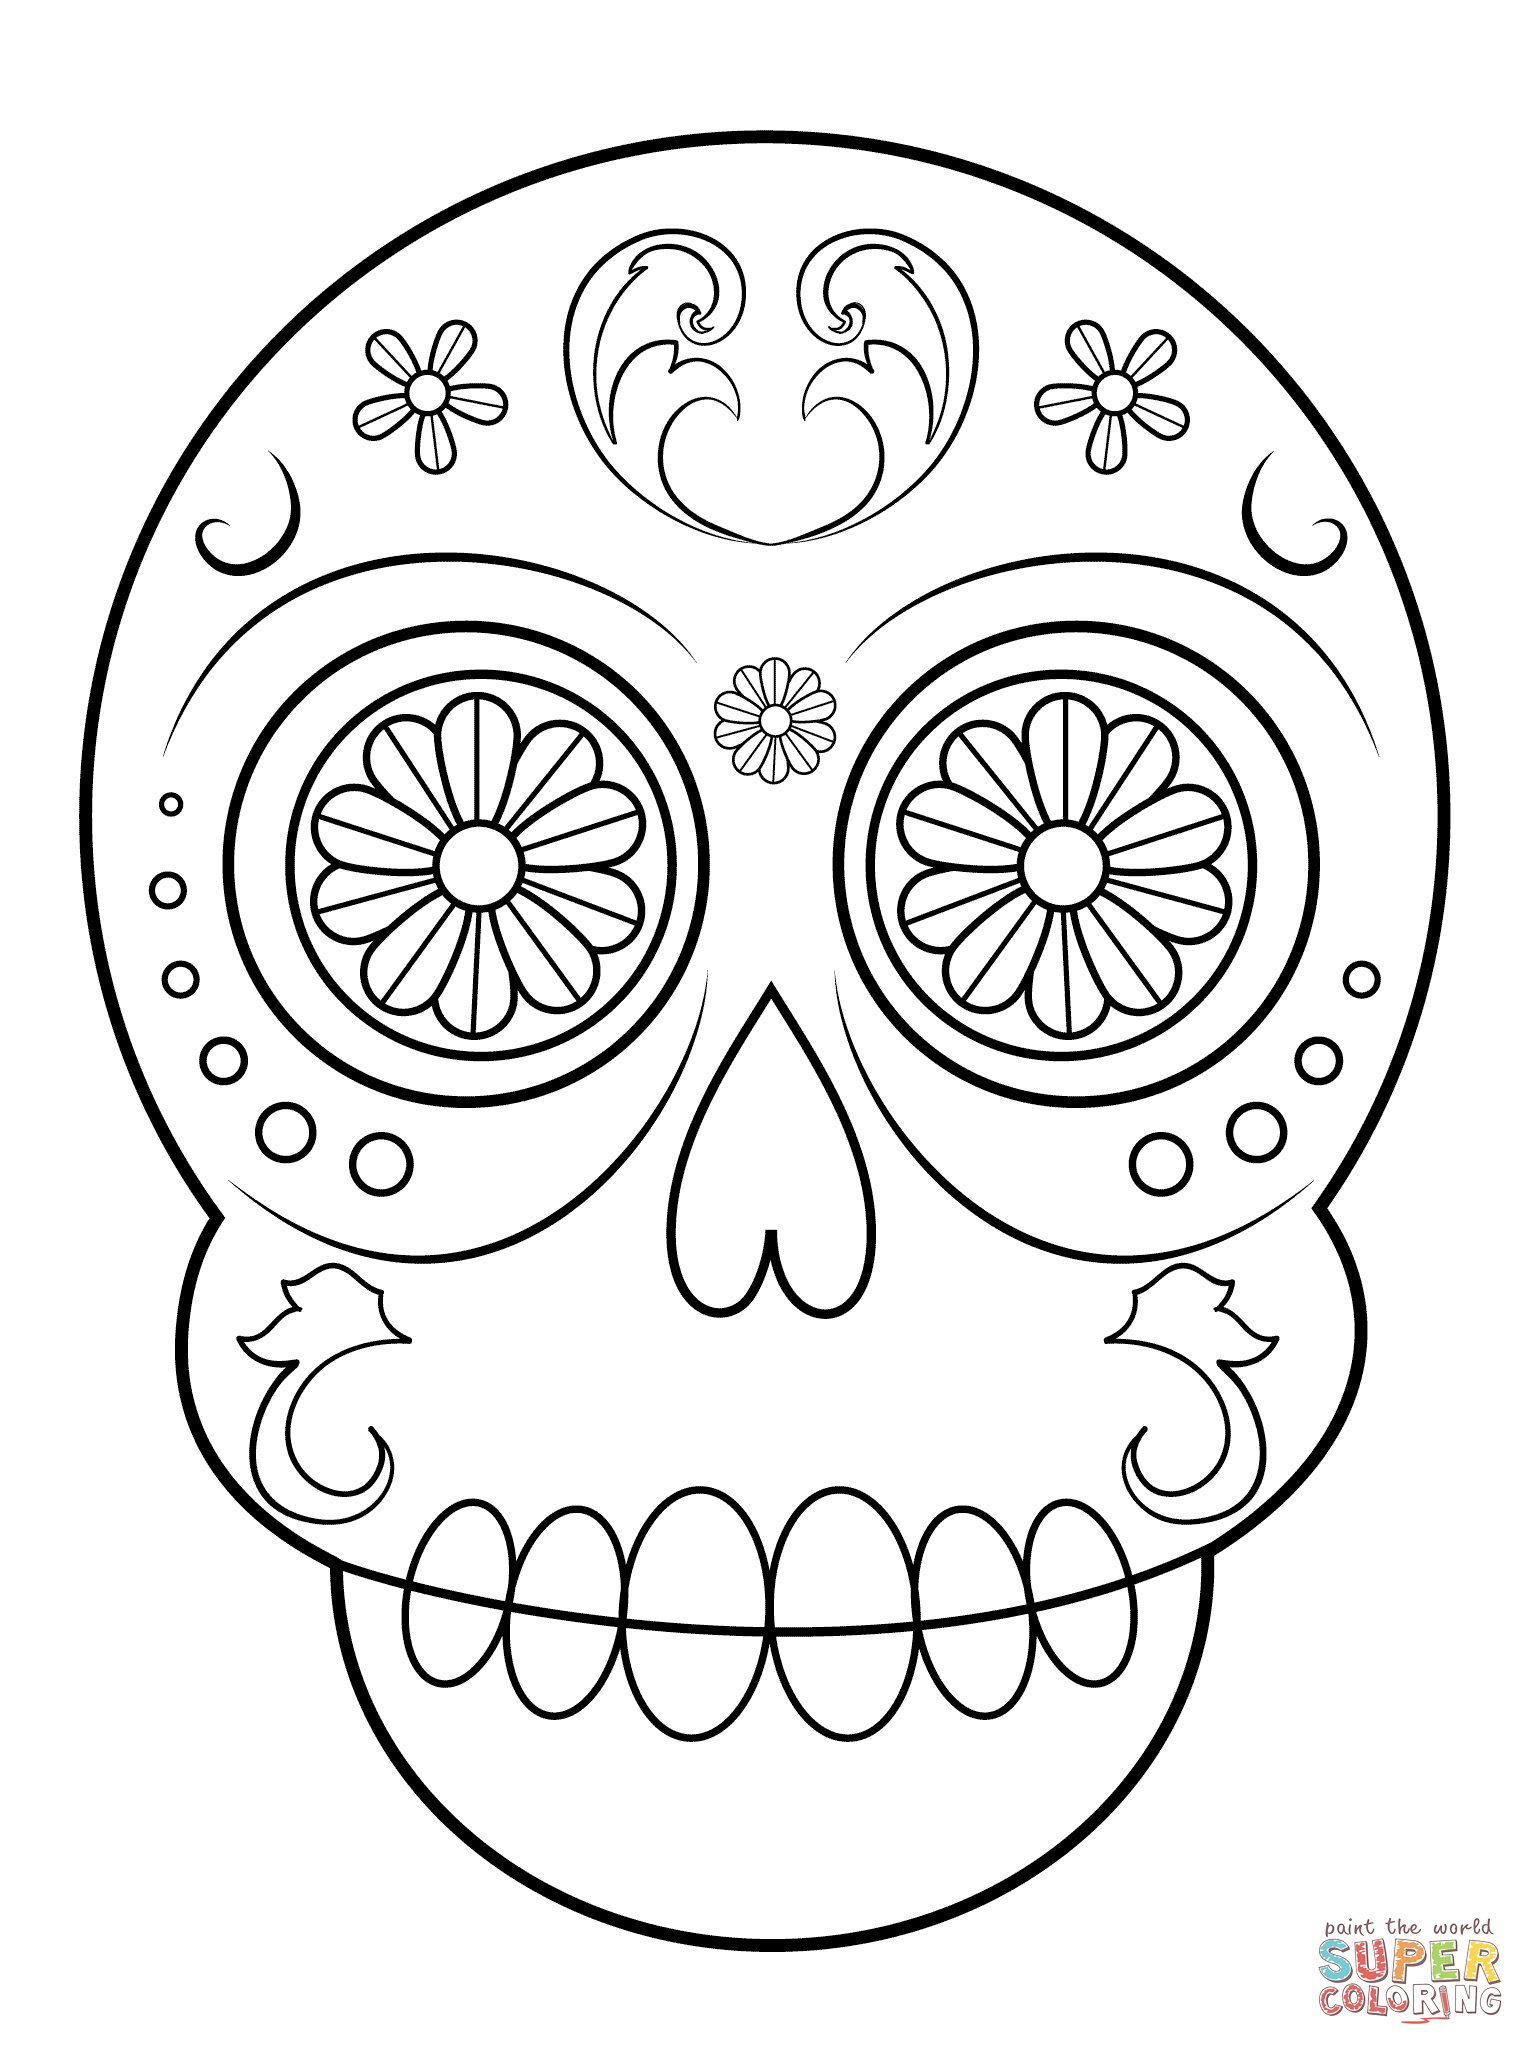 Simple Sugar Skull Coloring Page